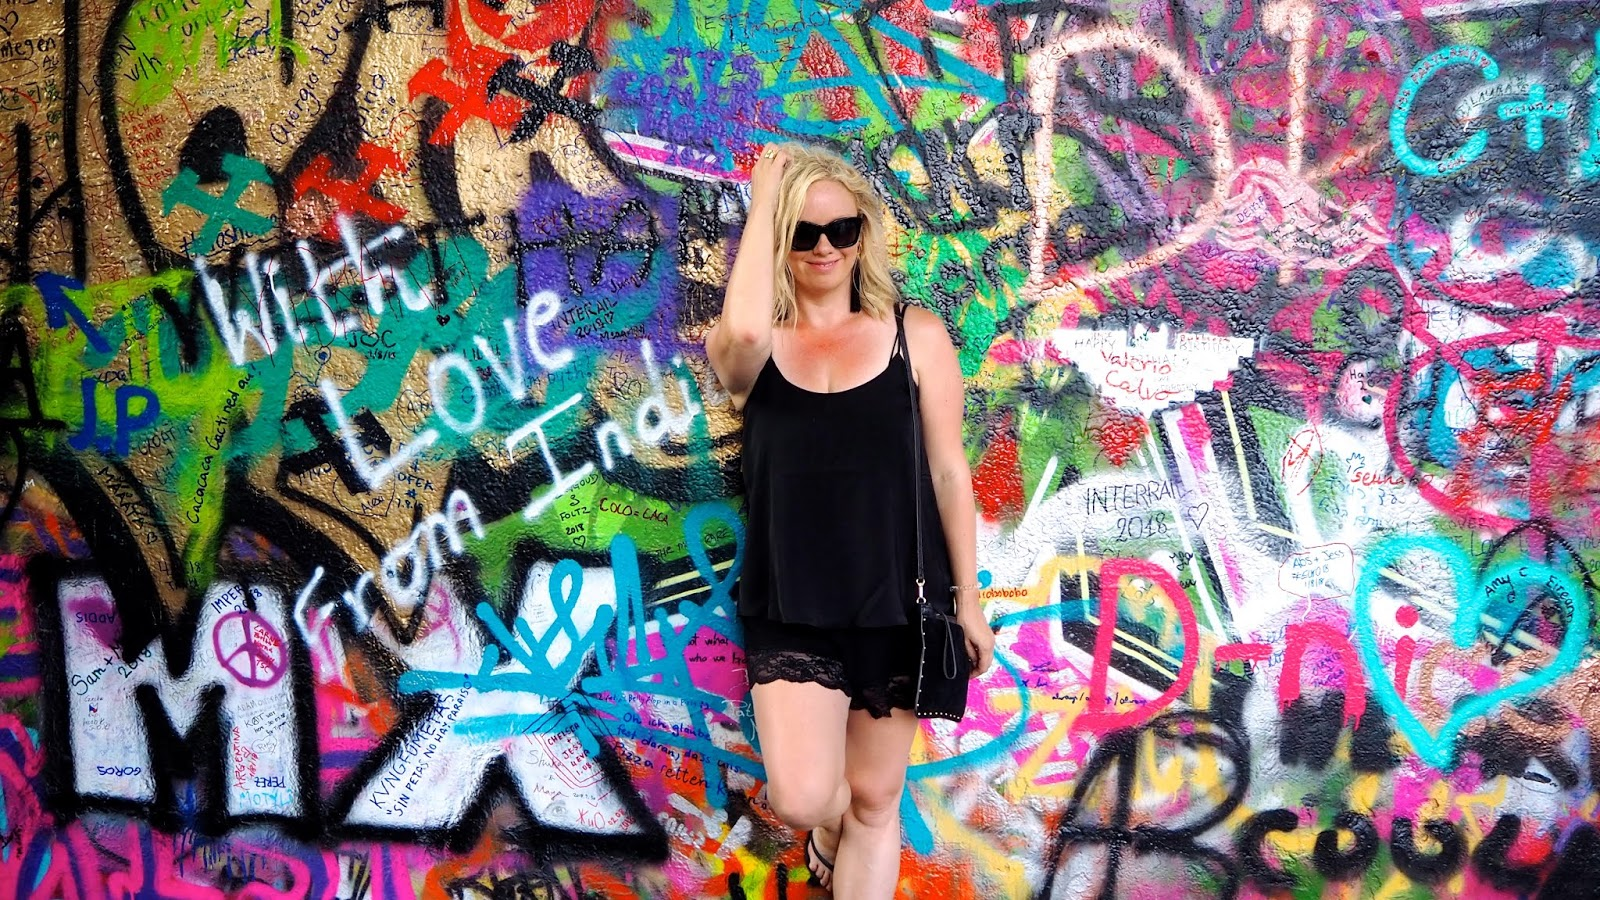 Ashley Turner with John Lennon Wall wearing lace trimmed black shorts and a black camisole